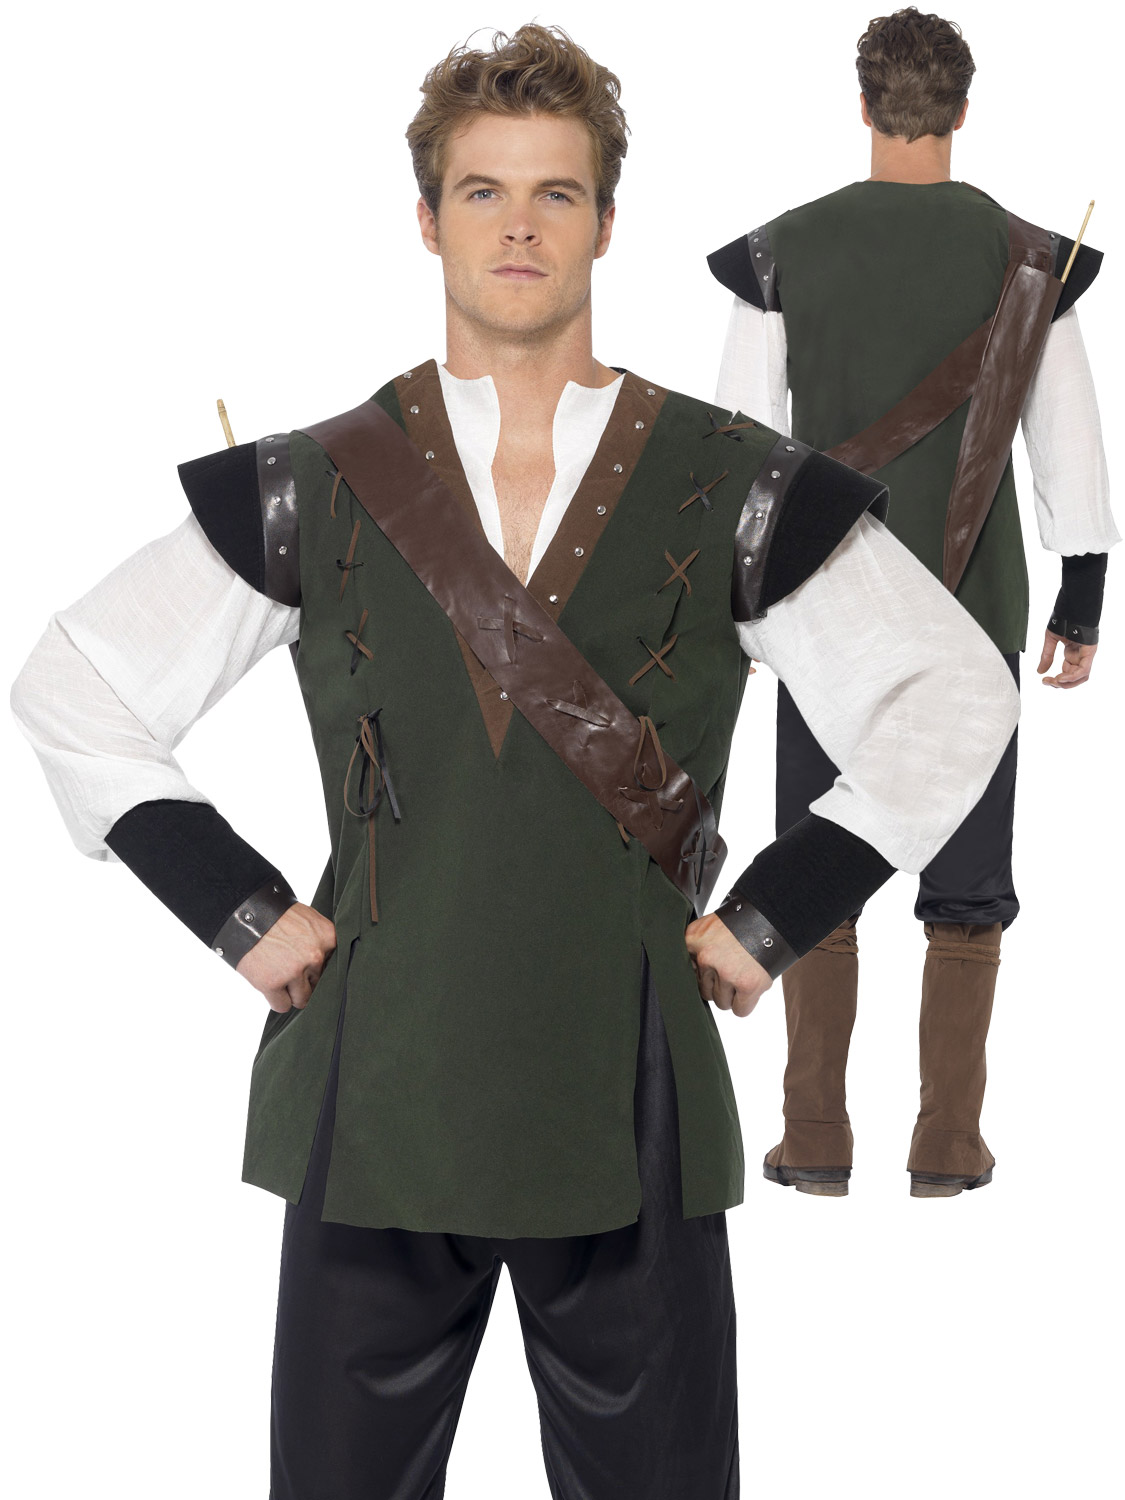 Mens robin hood costume adult medieval fancy dress prince of thieves transform yourself robin hood with this mens prince of thieves costume ideal if you are dressing up for a medieval themed fancy dress party solutioingenieria Images